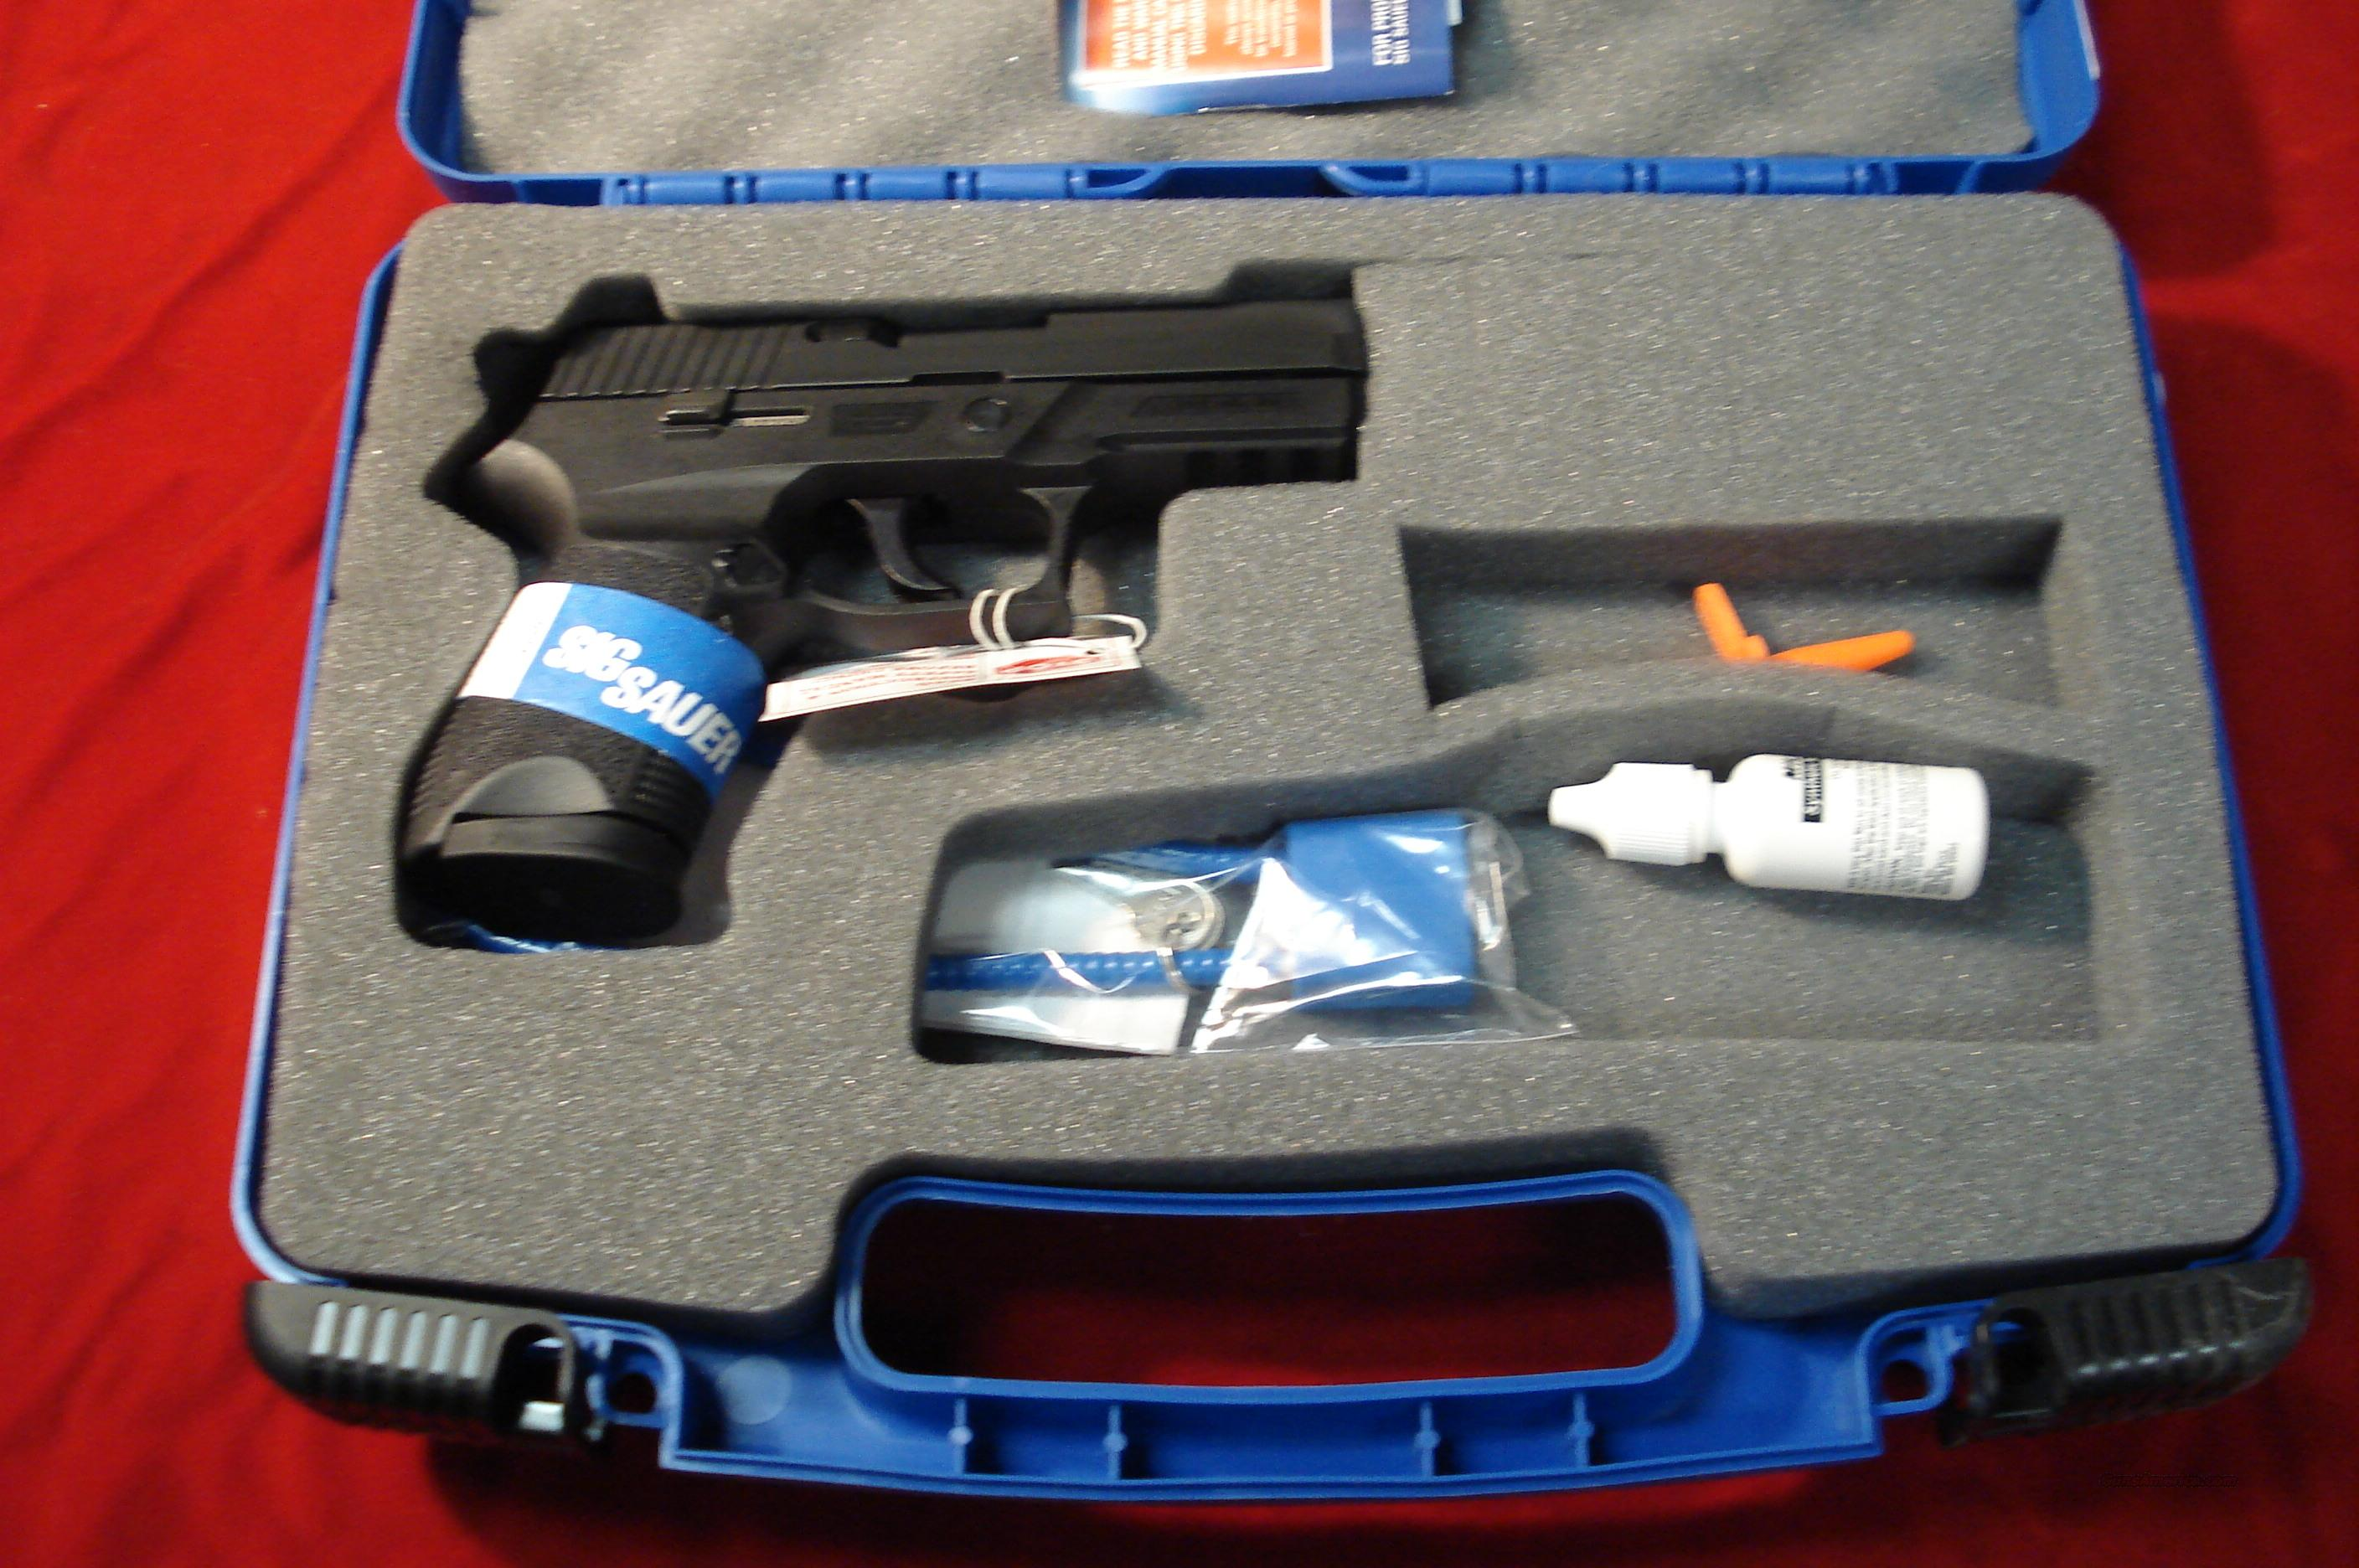 SIG P250 9MM COMPACT W/NIGHT SIGHTS NEW  Guns > Pistols > Sig - Sauer/Sigarms Pistols > P250